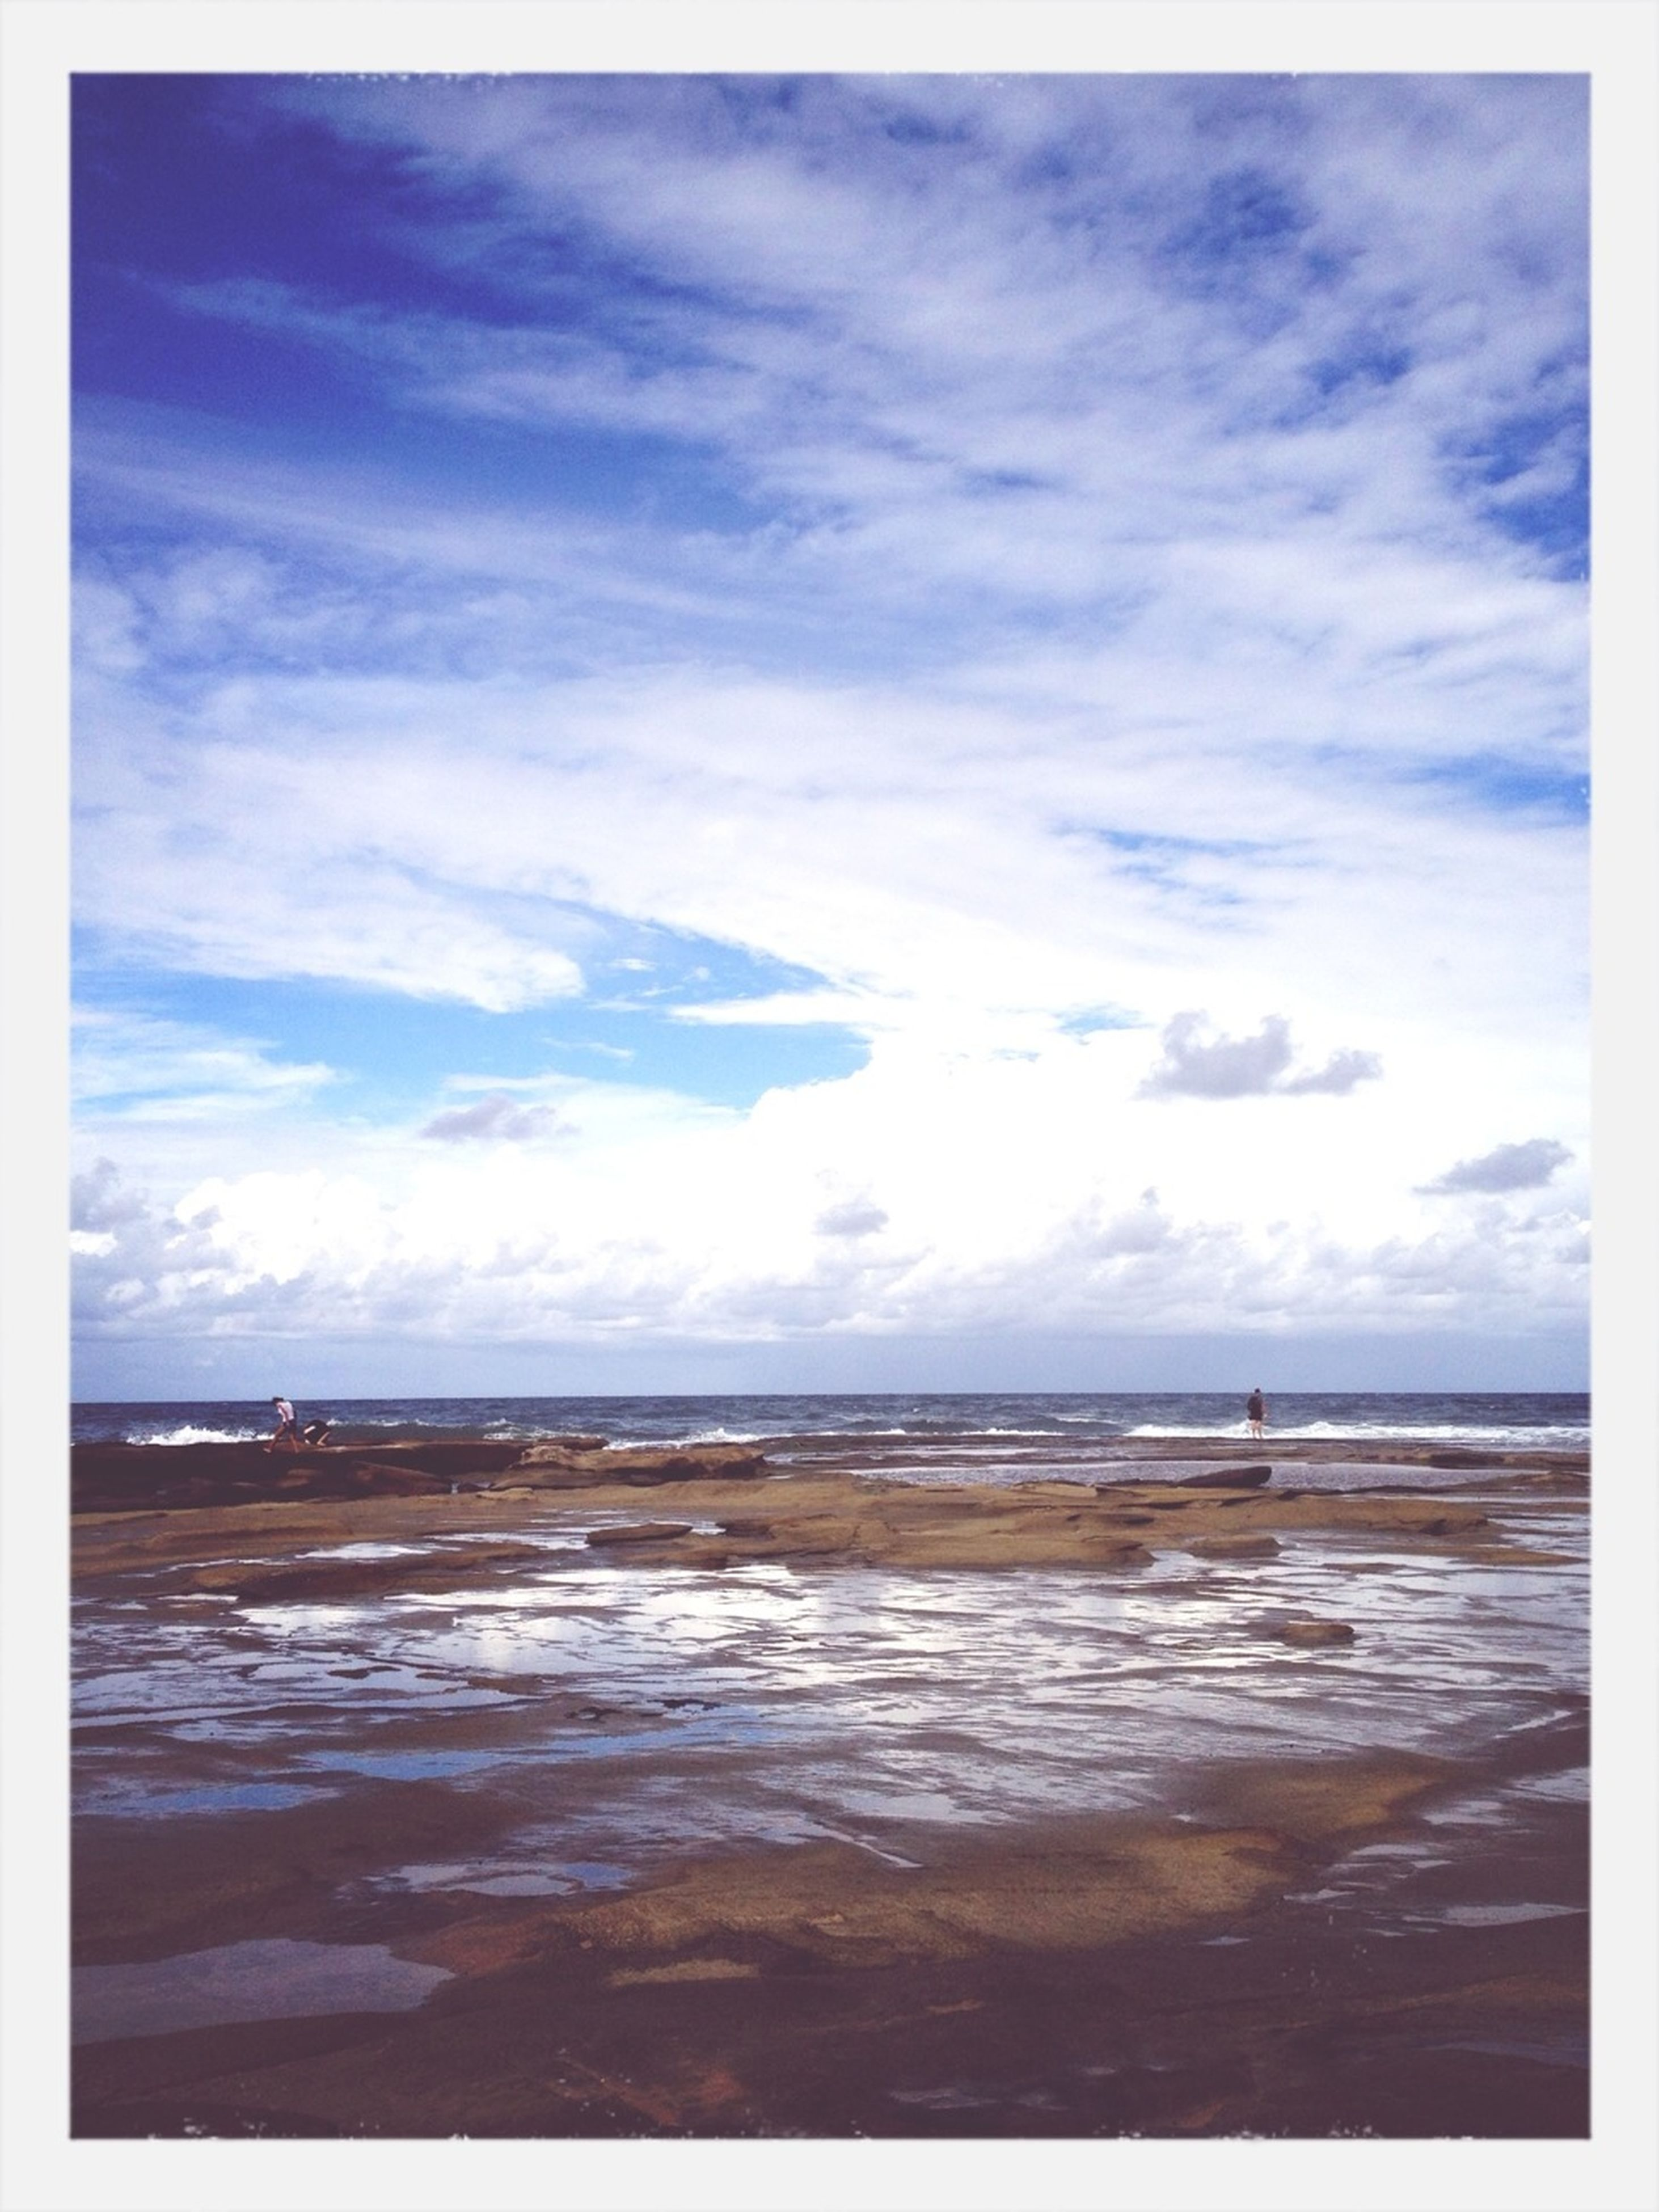 water, sky, sea, tranquil scene, cloud - sky, tranquility, transfer print, scenics, beauty in nature, horizon over water, cloudy, auto post production filter, cloud, beach, nature, blue, idyllic, waterfront, shore, calm